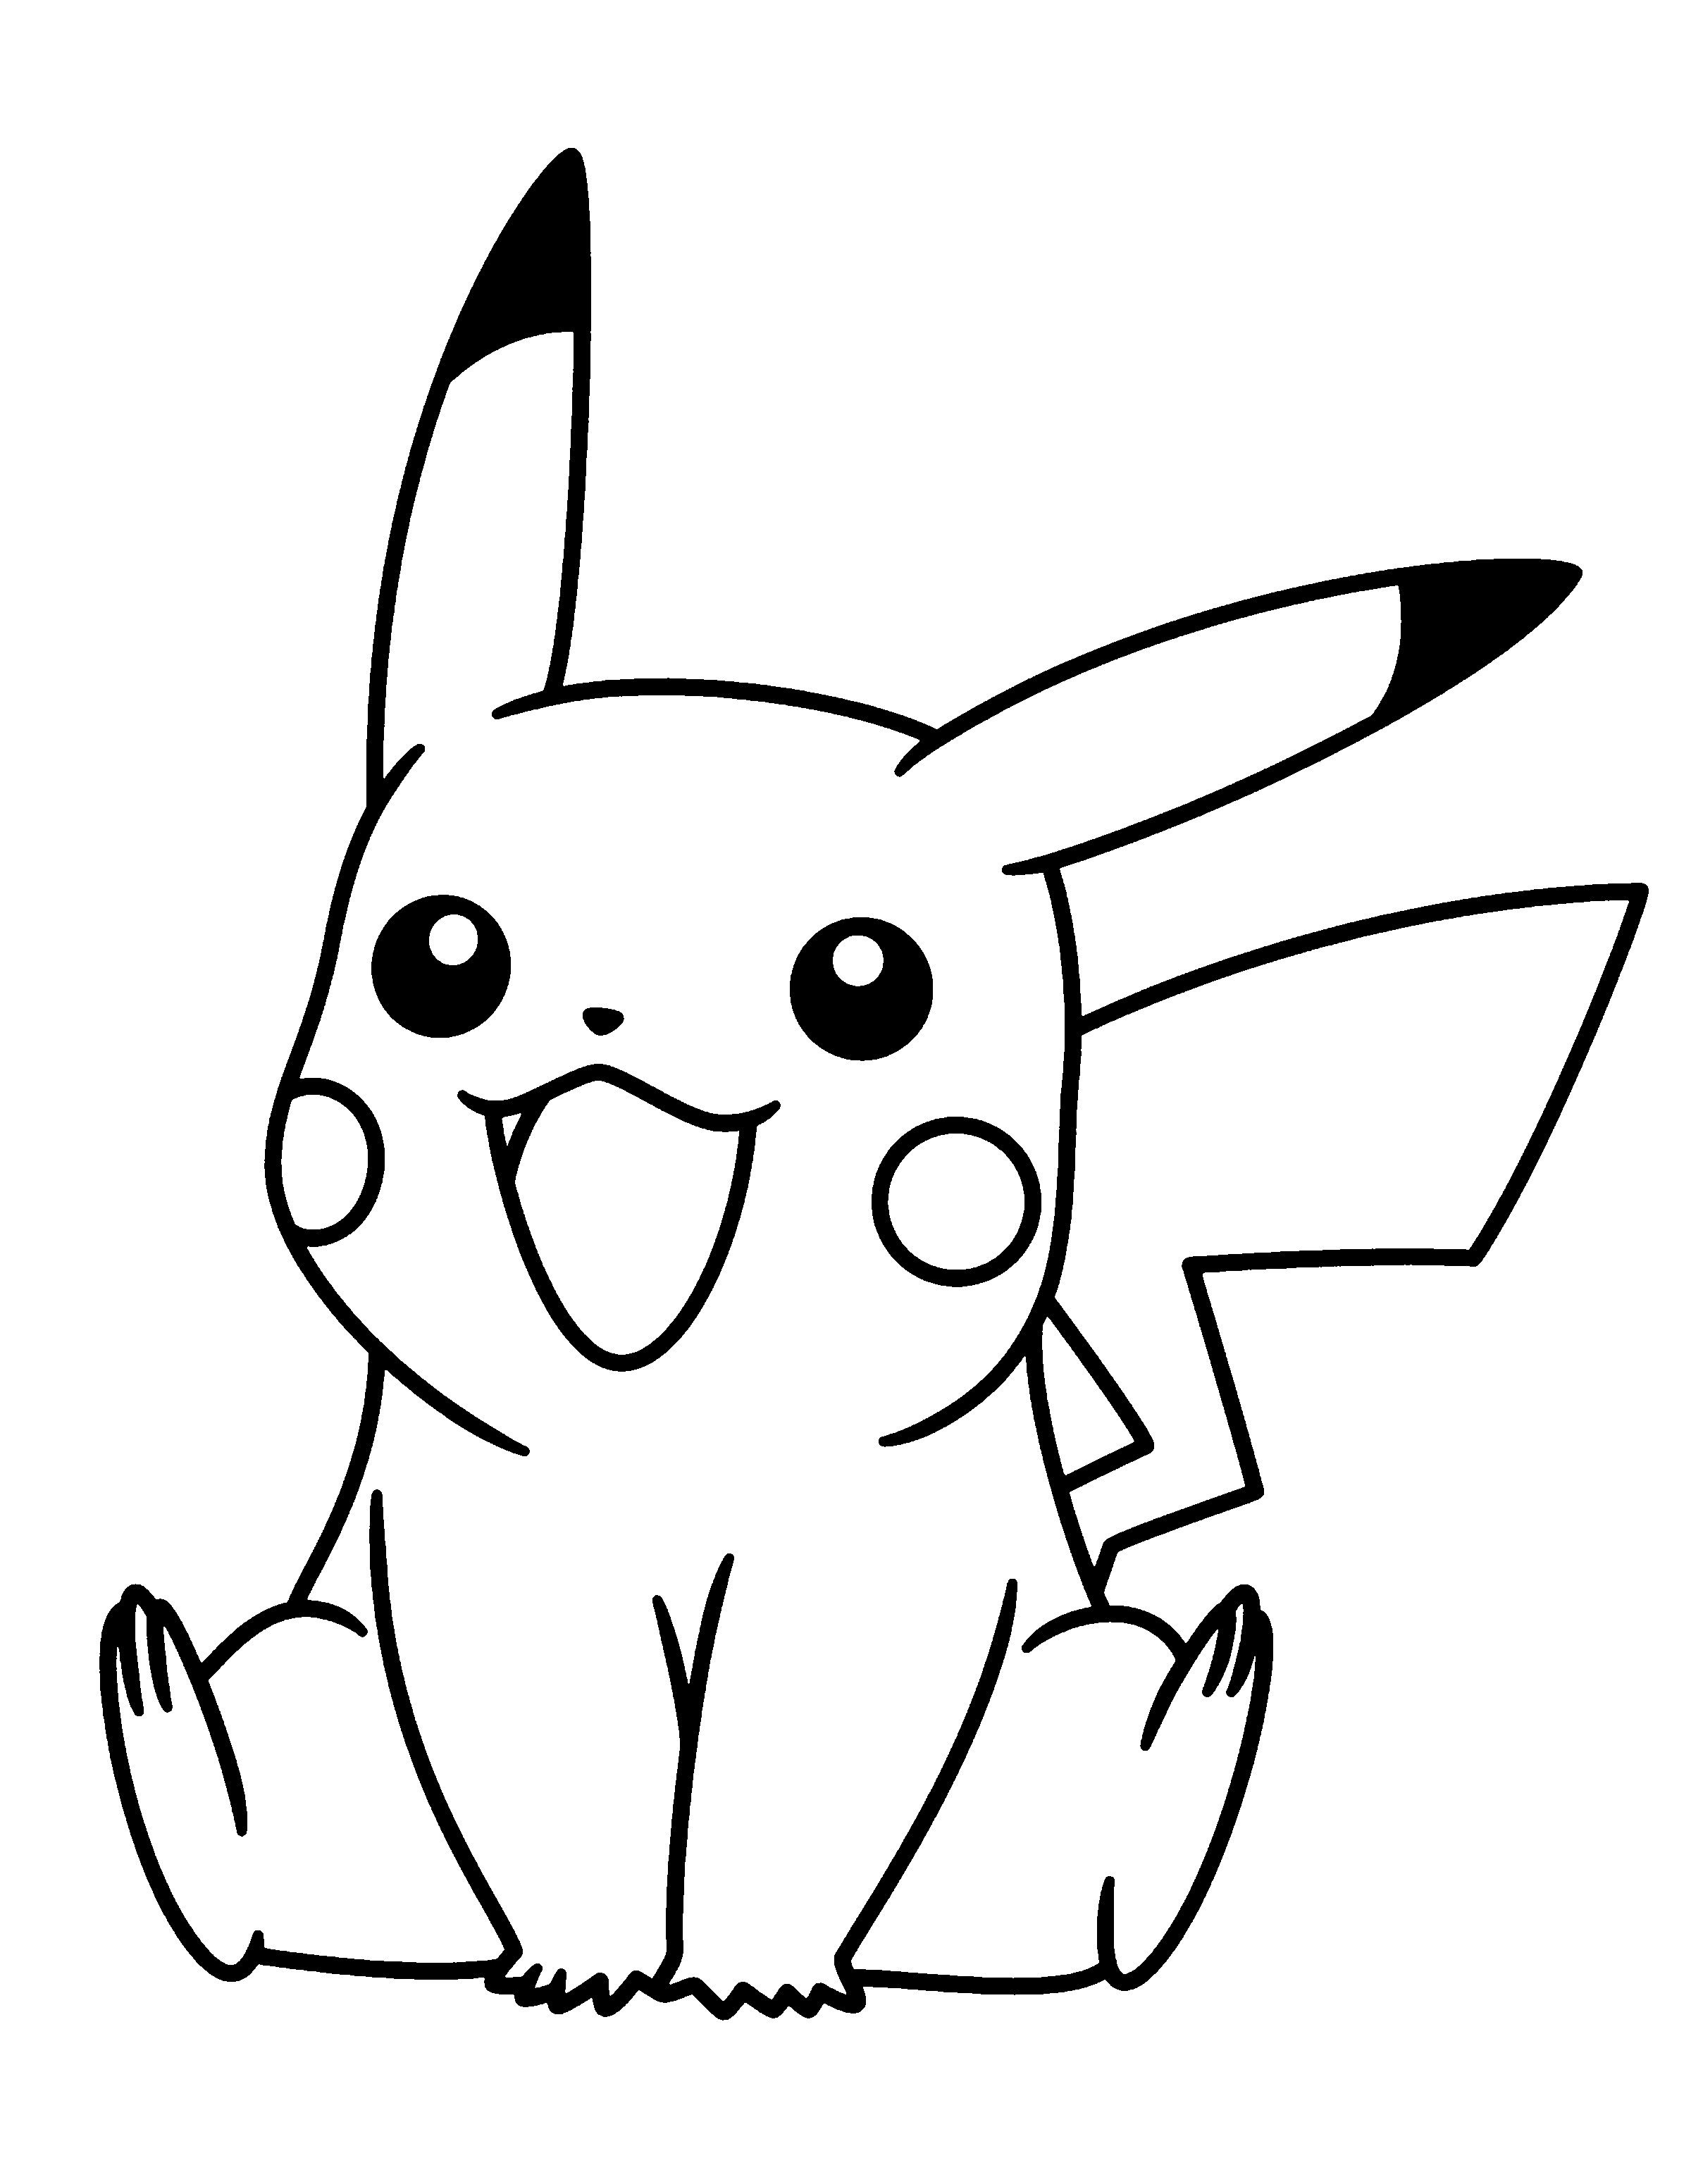 pikachu drawing coloring pages pikachu coloring pages to download and print for free drawing pages coloring pikachu